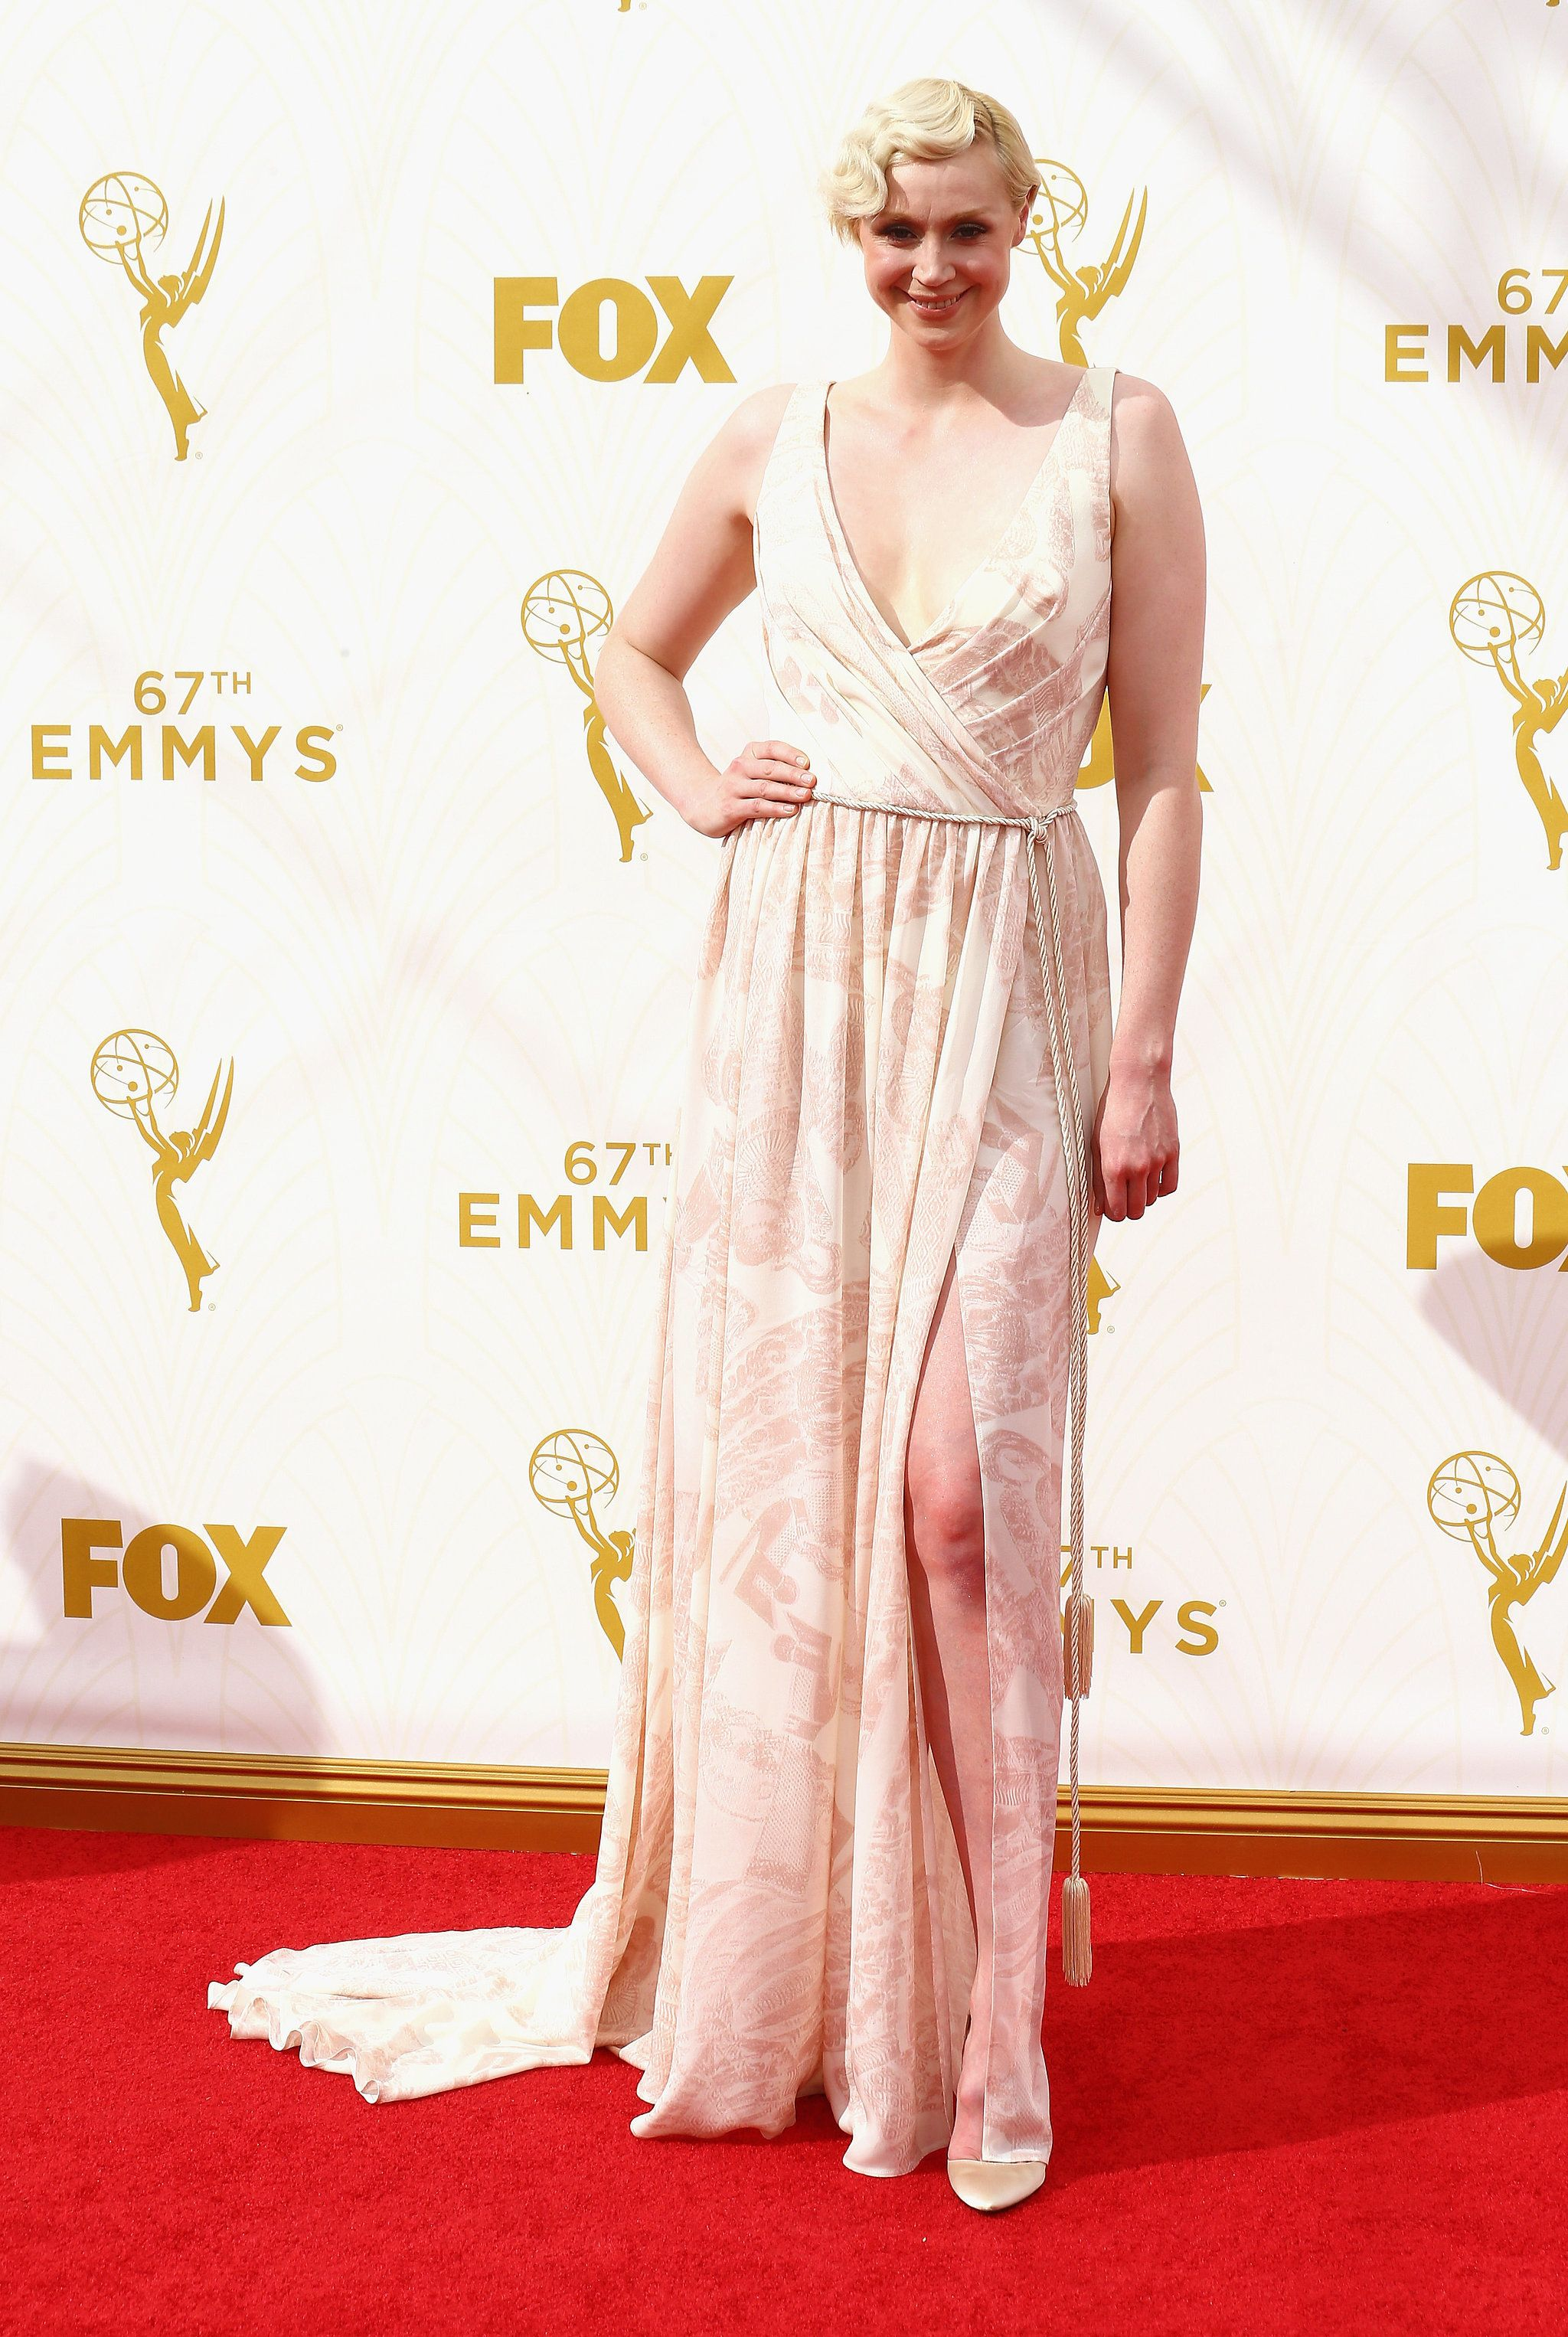 Gwendoline Christie Nude Pictures intended for gwendoline christie | red carpet, photo galleries and red carpet